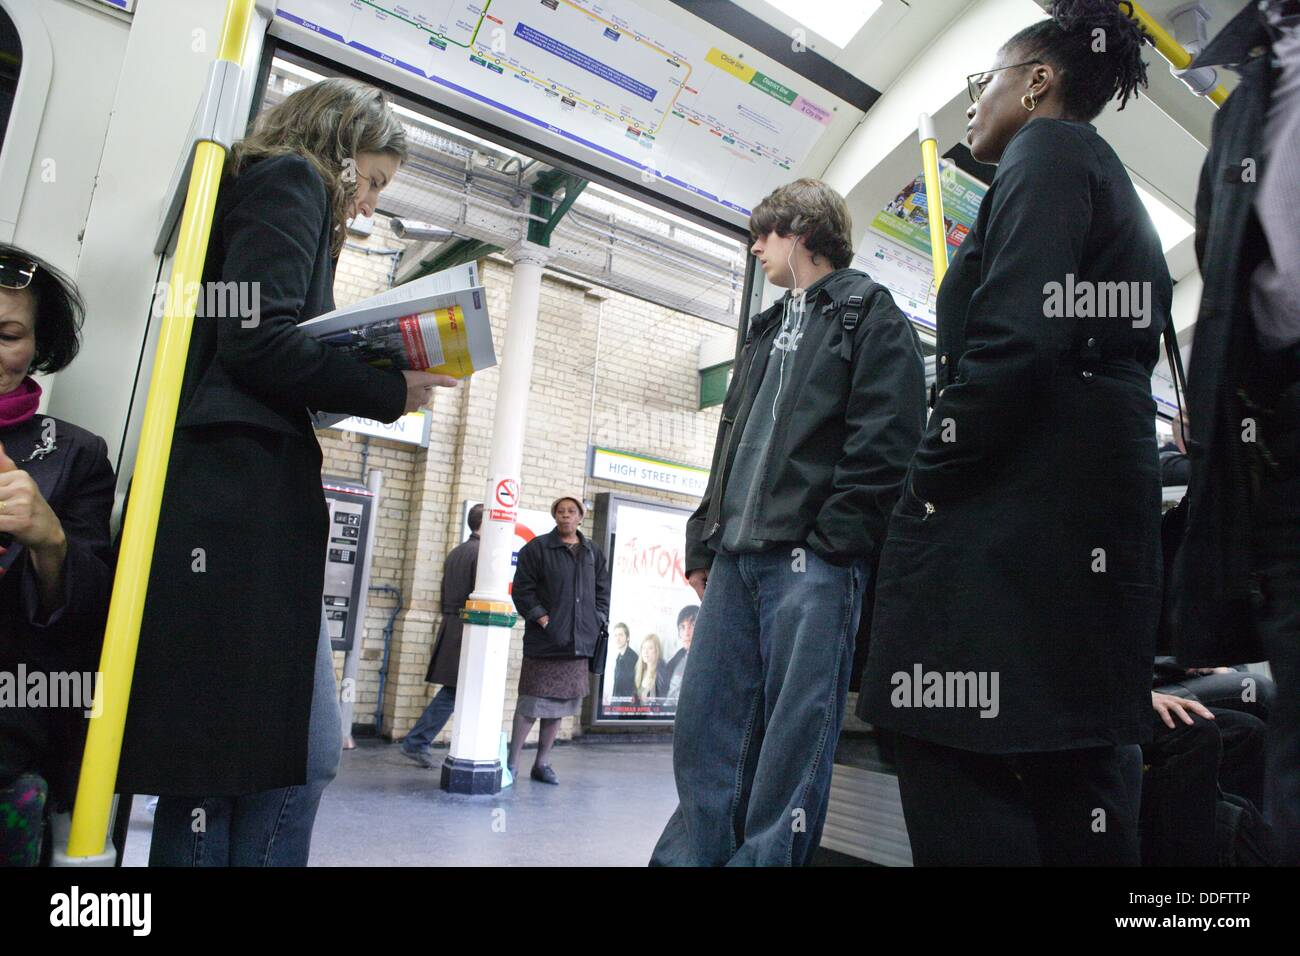 Tube train and commuters at a station, London, England Stock Photo